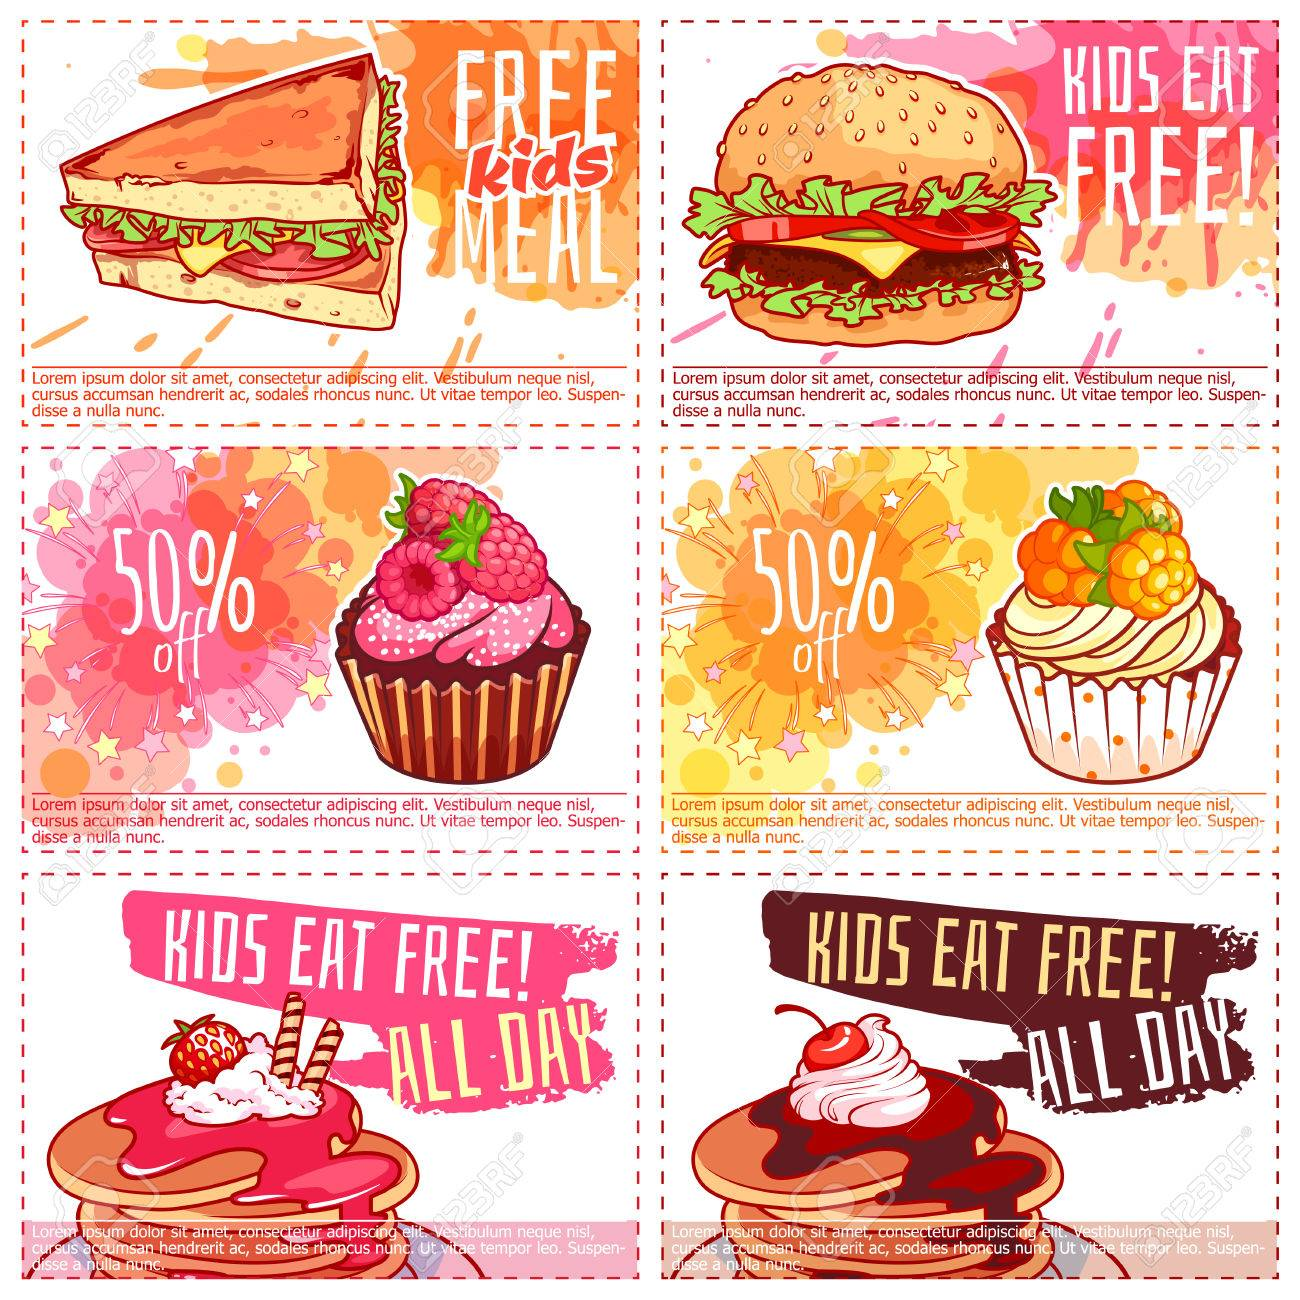 Six Different Kids Discount Coupons For Fast Food Or Dessert Royalty Free Cliparts Vectors And Stock Illustration Image 84431907